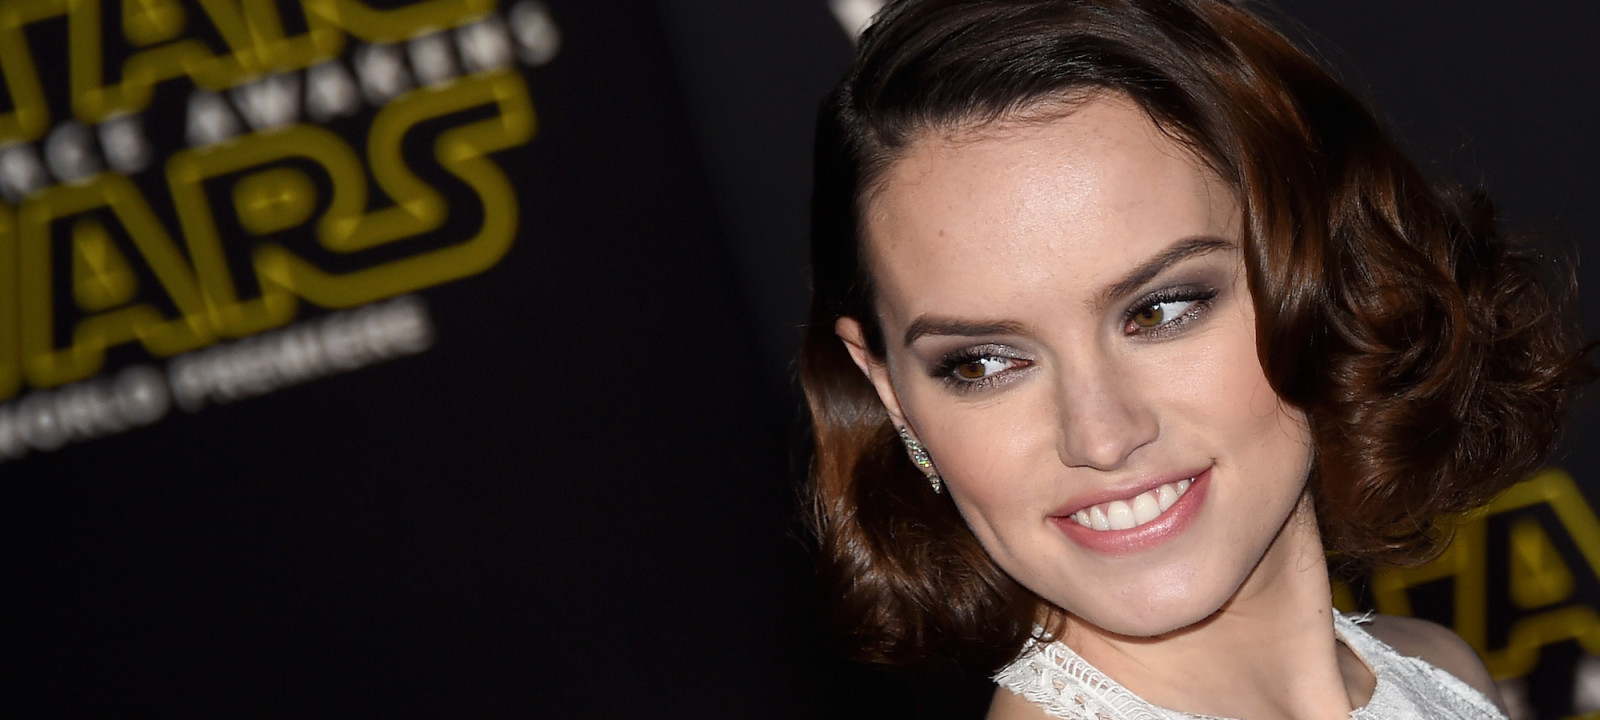 "Actress Daisy Ridley attends the premiere of Walt Disney Pictures and Lucasfilm's ""Star Wars: The Force Awakens"" at the Dolby Theatre on December 14, 2015 in Hollywood, California."